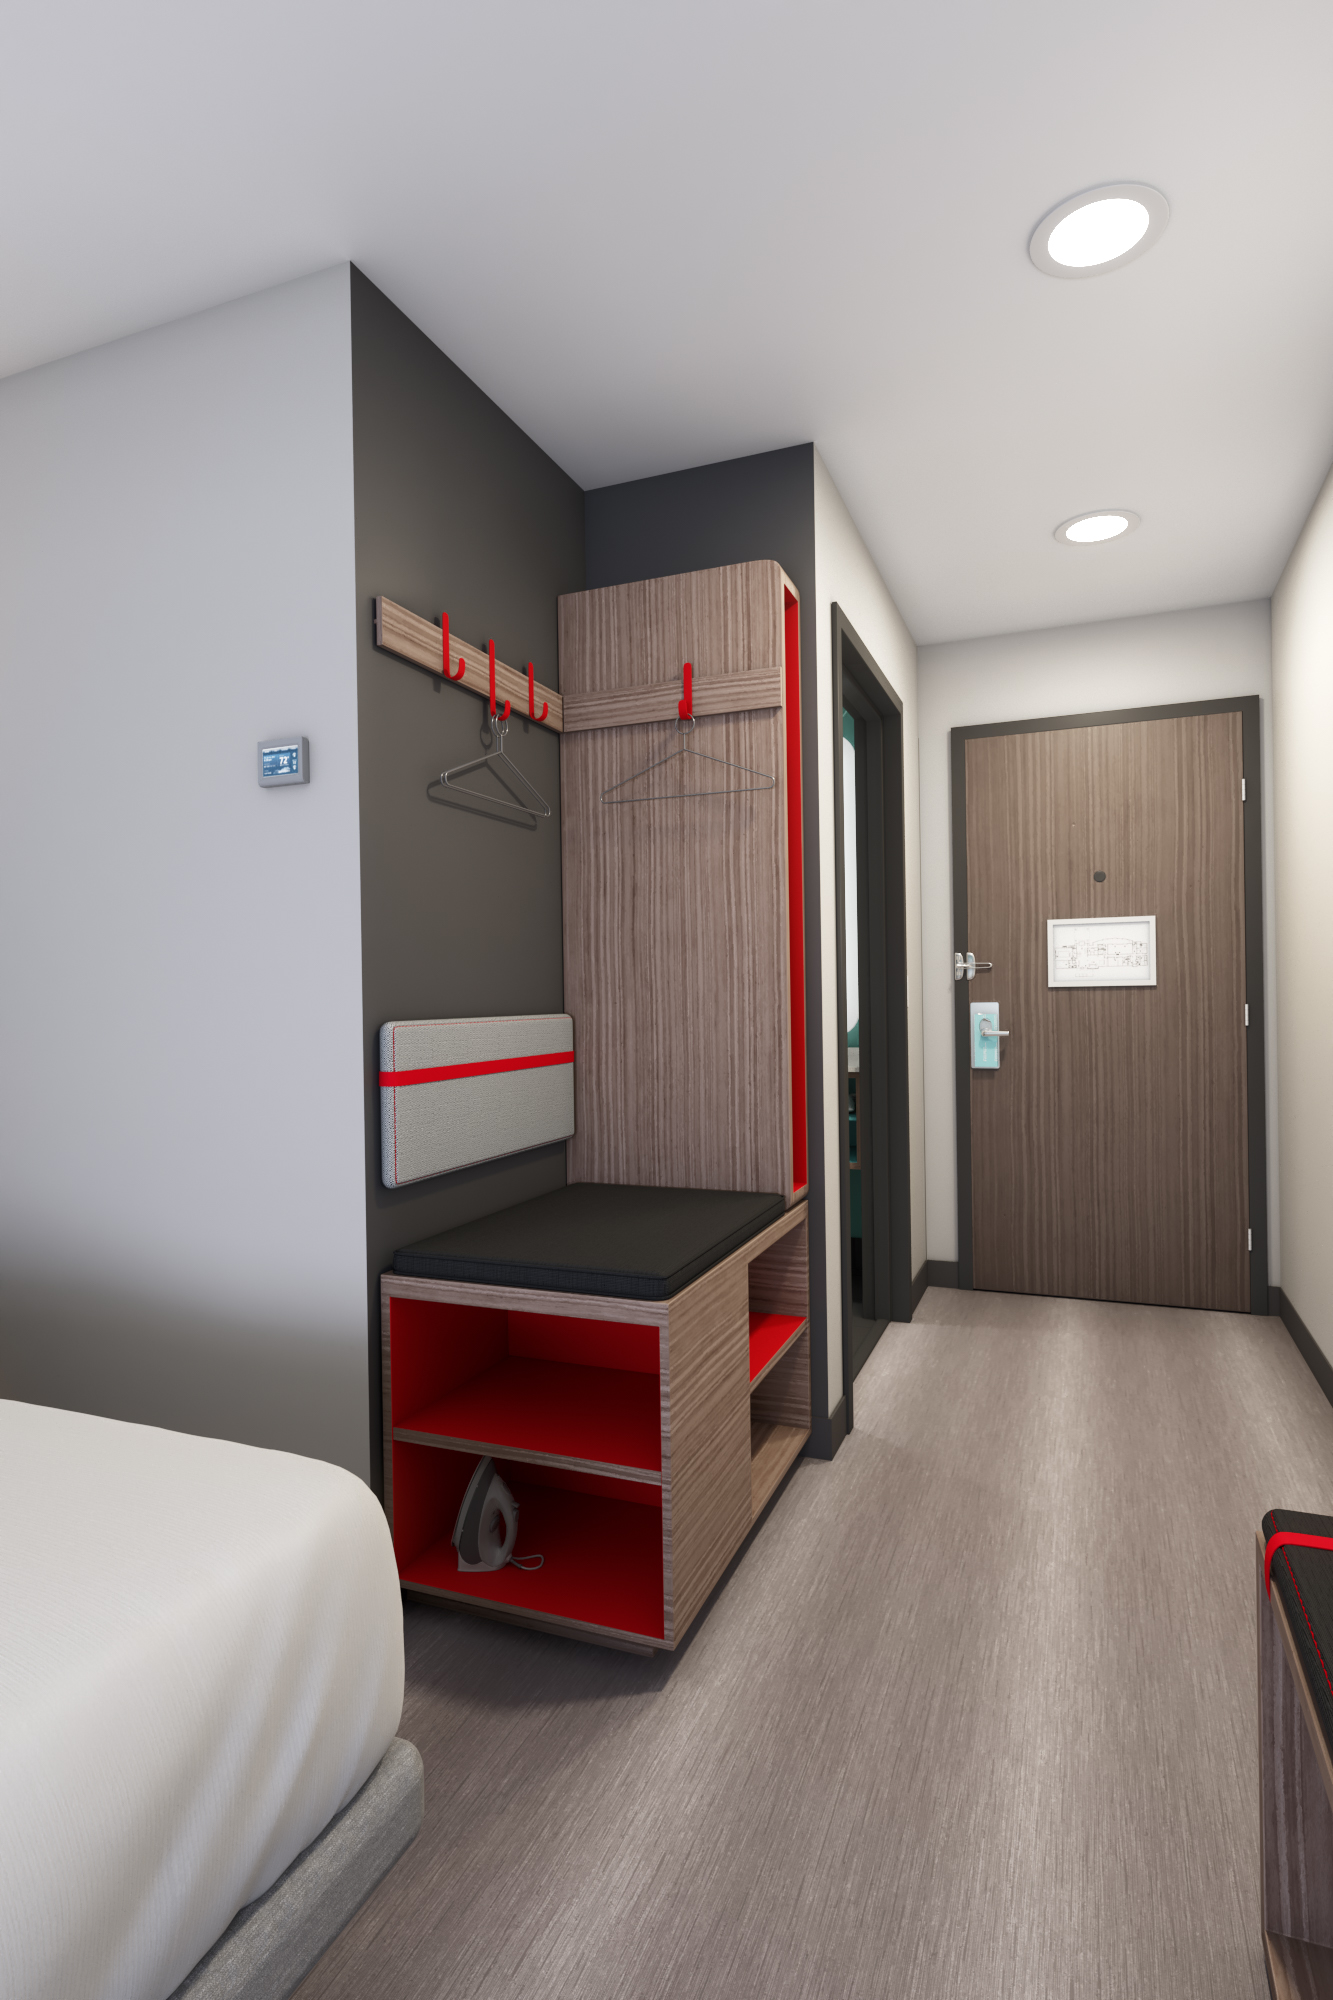 IHG's upcoming Avid brand has an open closet with shelves for storage.